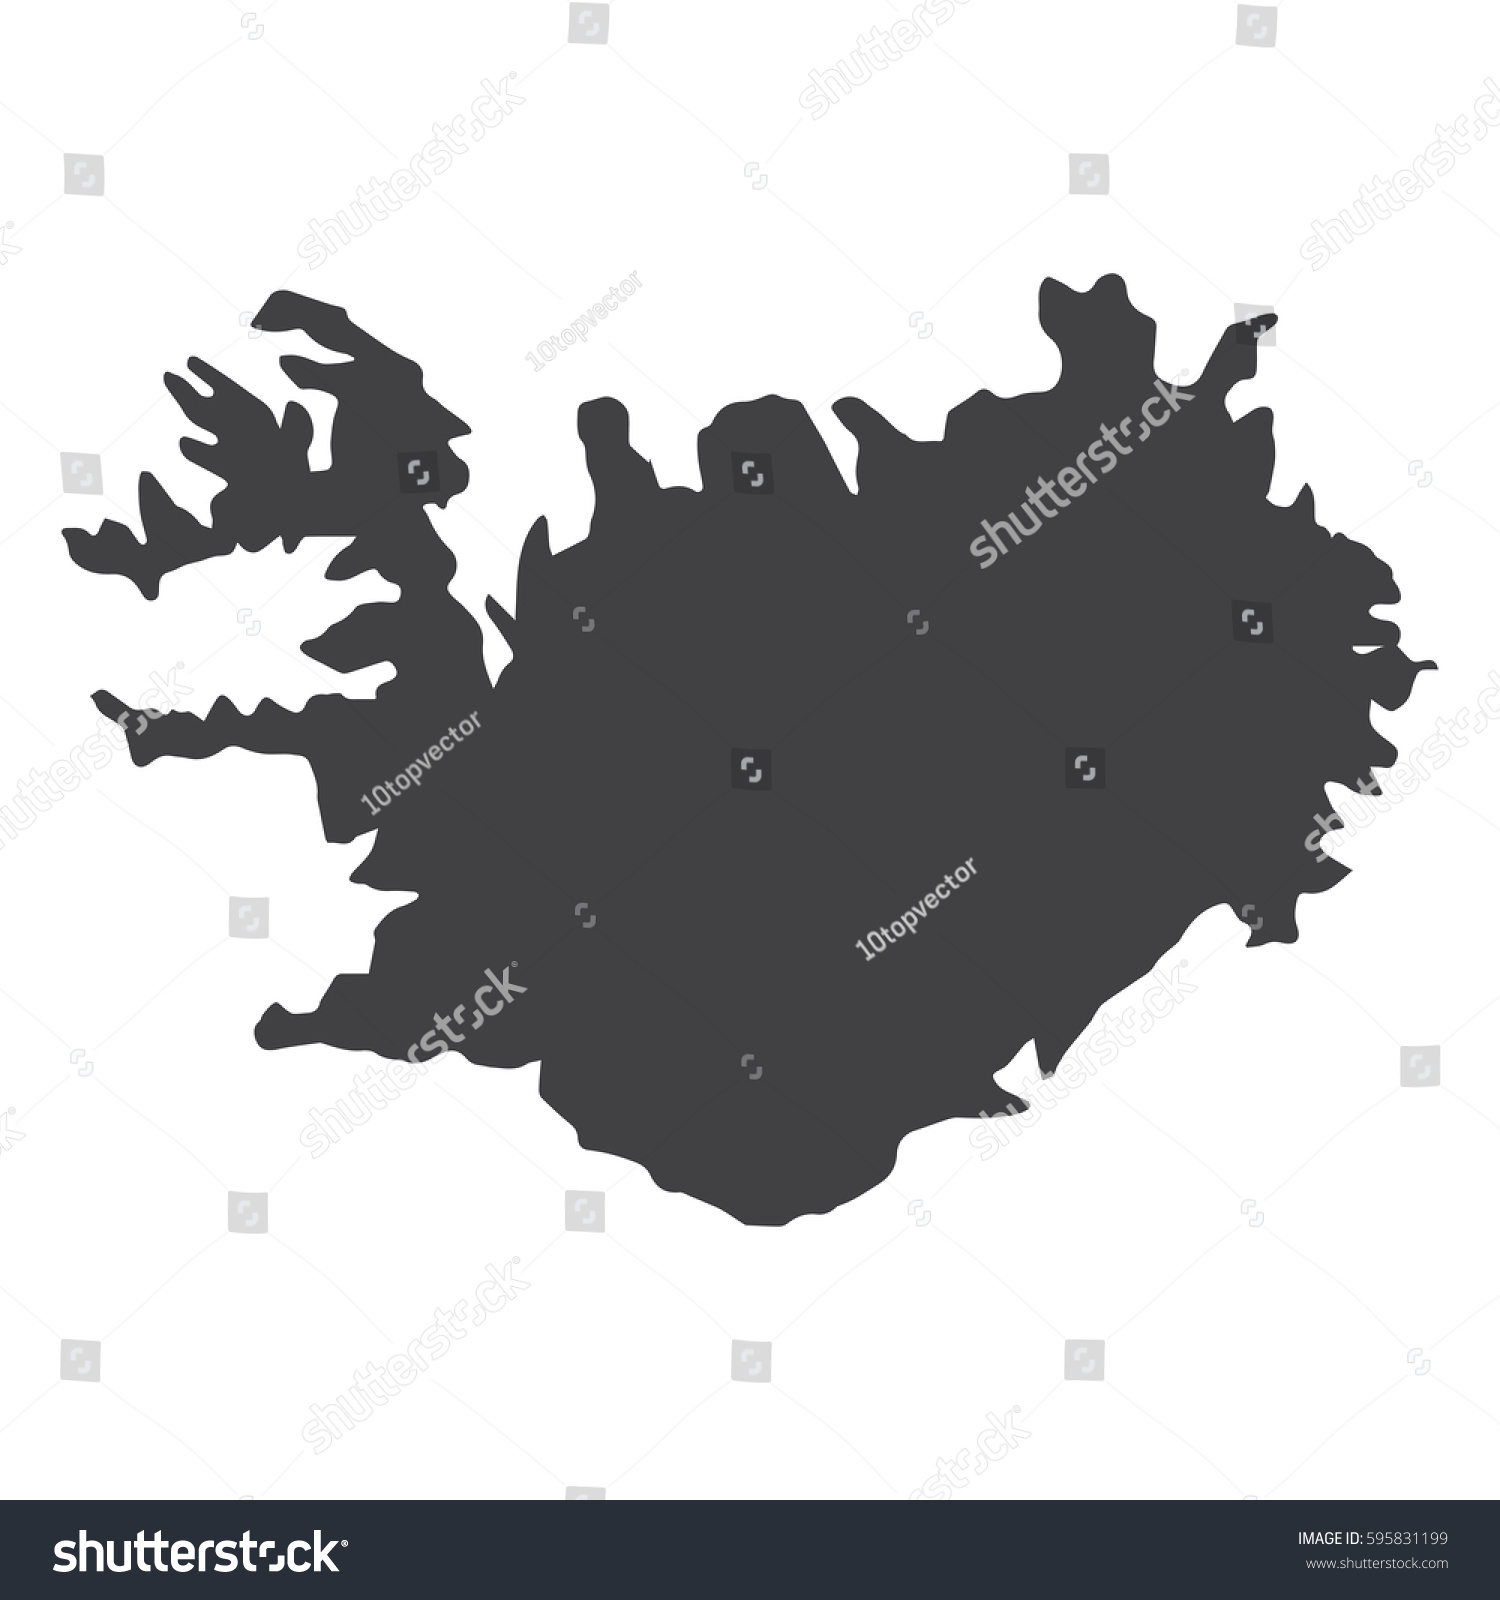 Iceland Map Black On White Background Stock Vector 595831199 ...